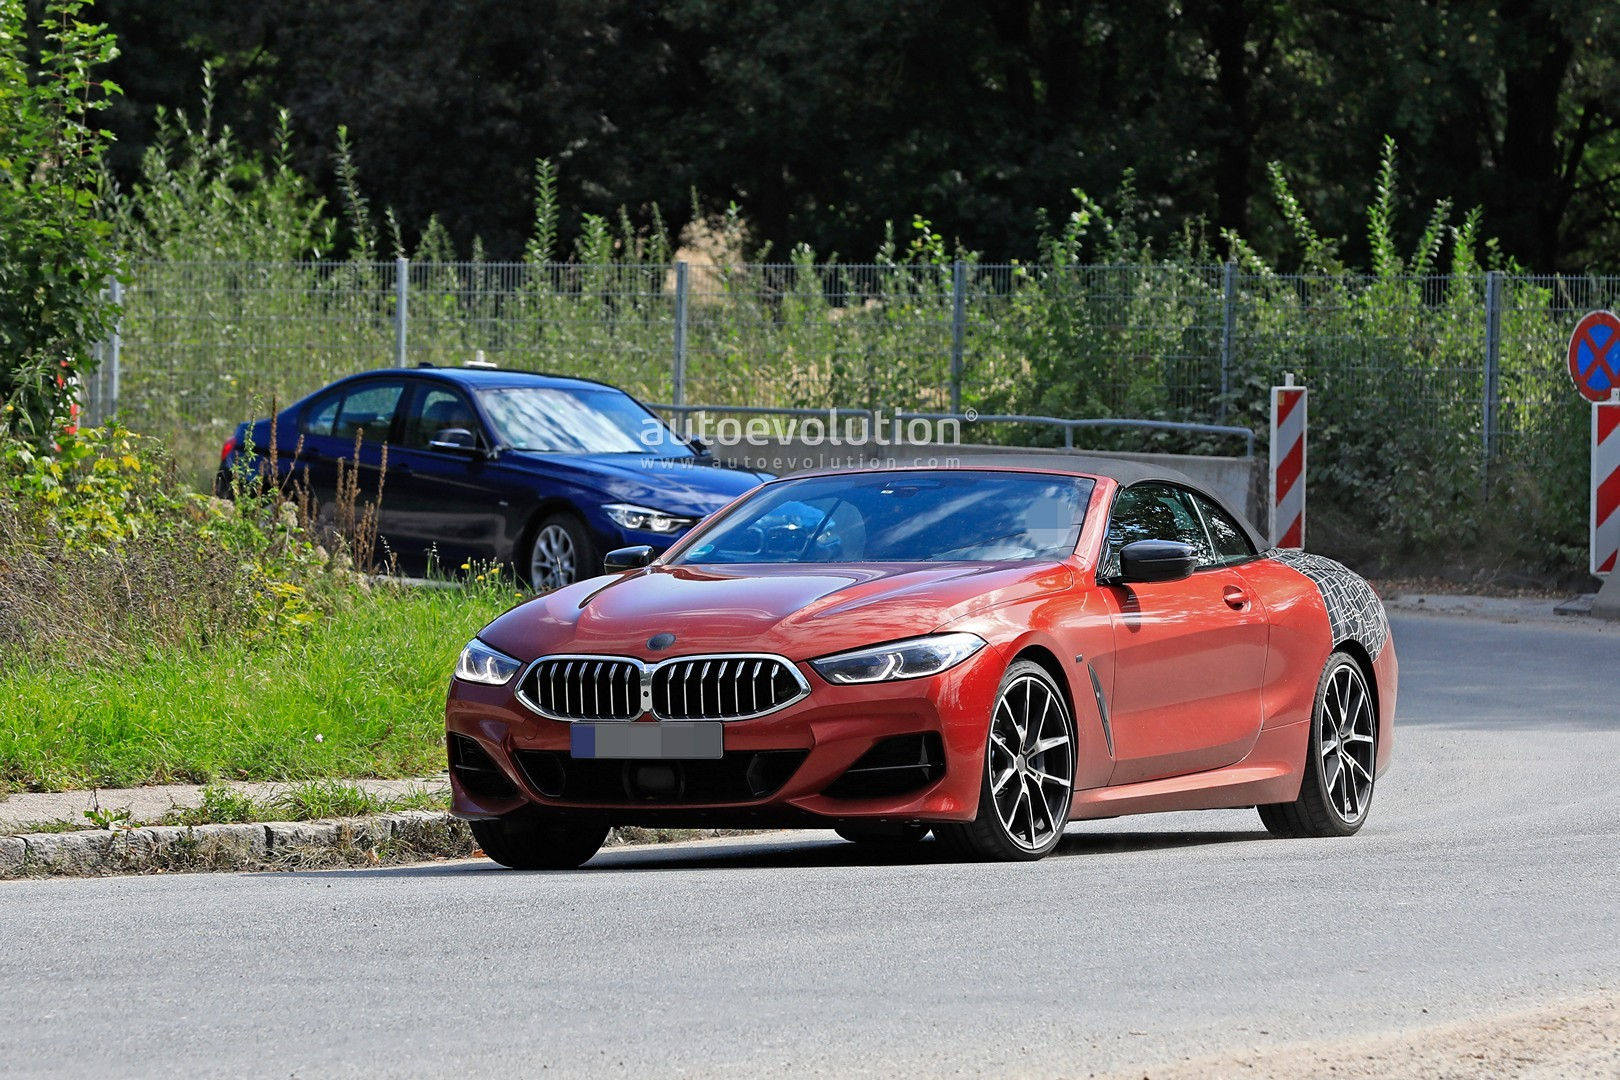 2019 Bmw M850i Xdrive Cabriolet Looks Stunning In Sunset Orange